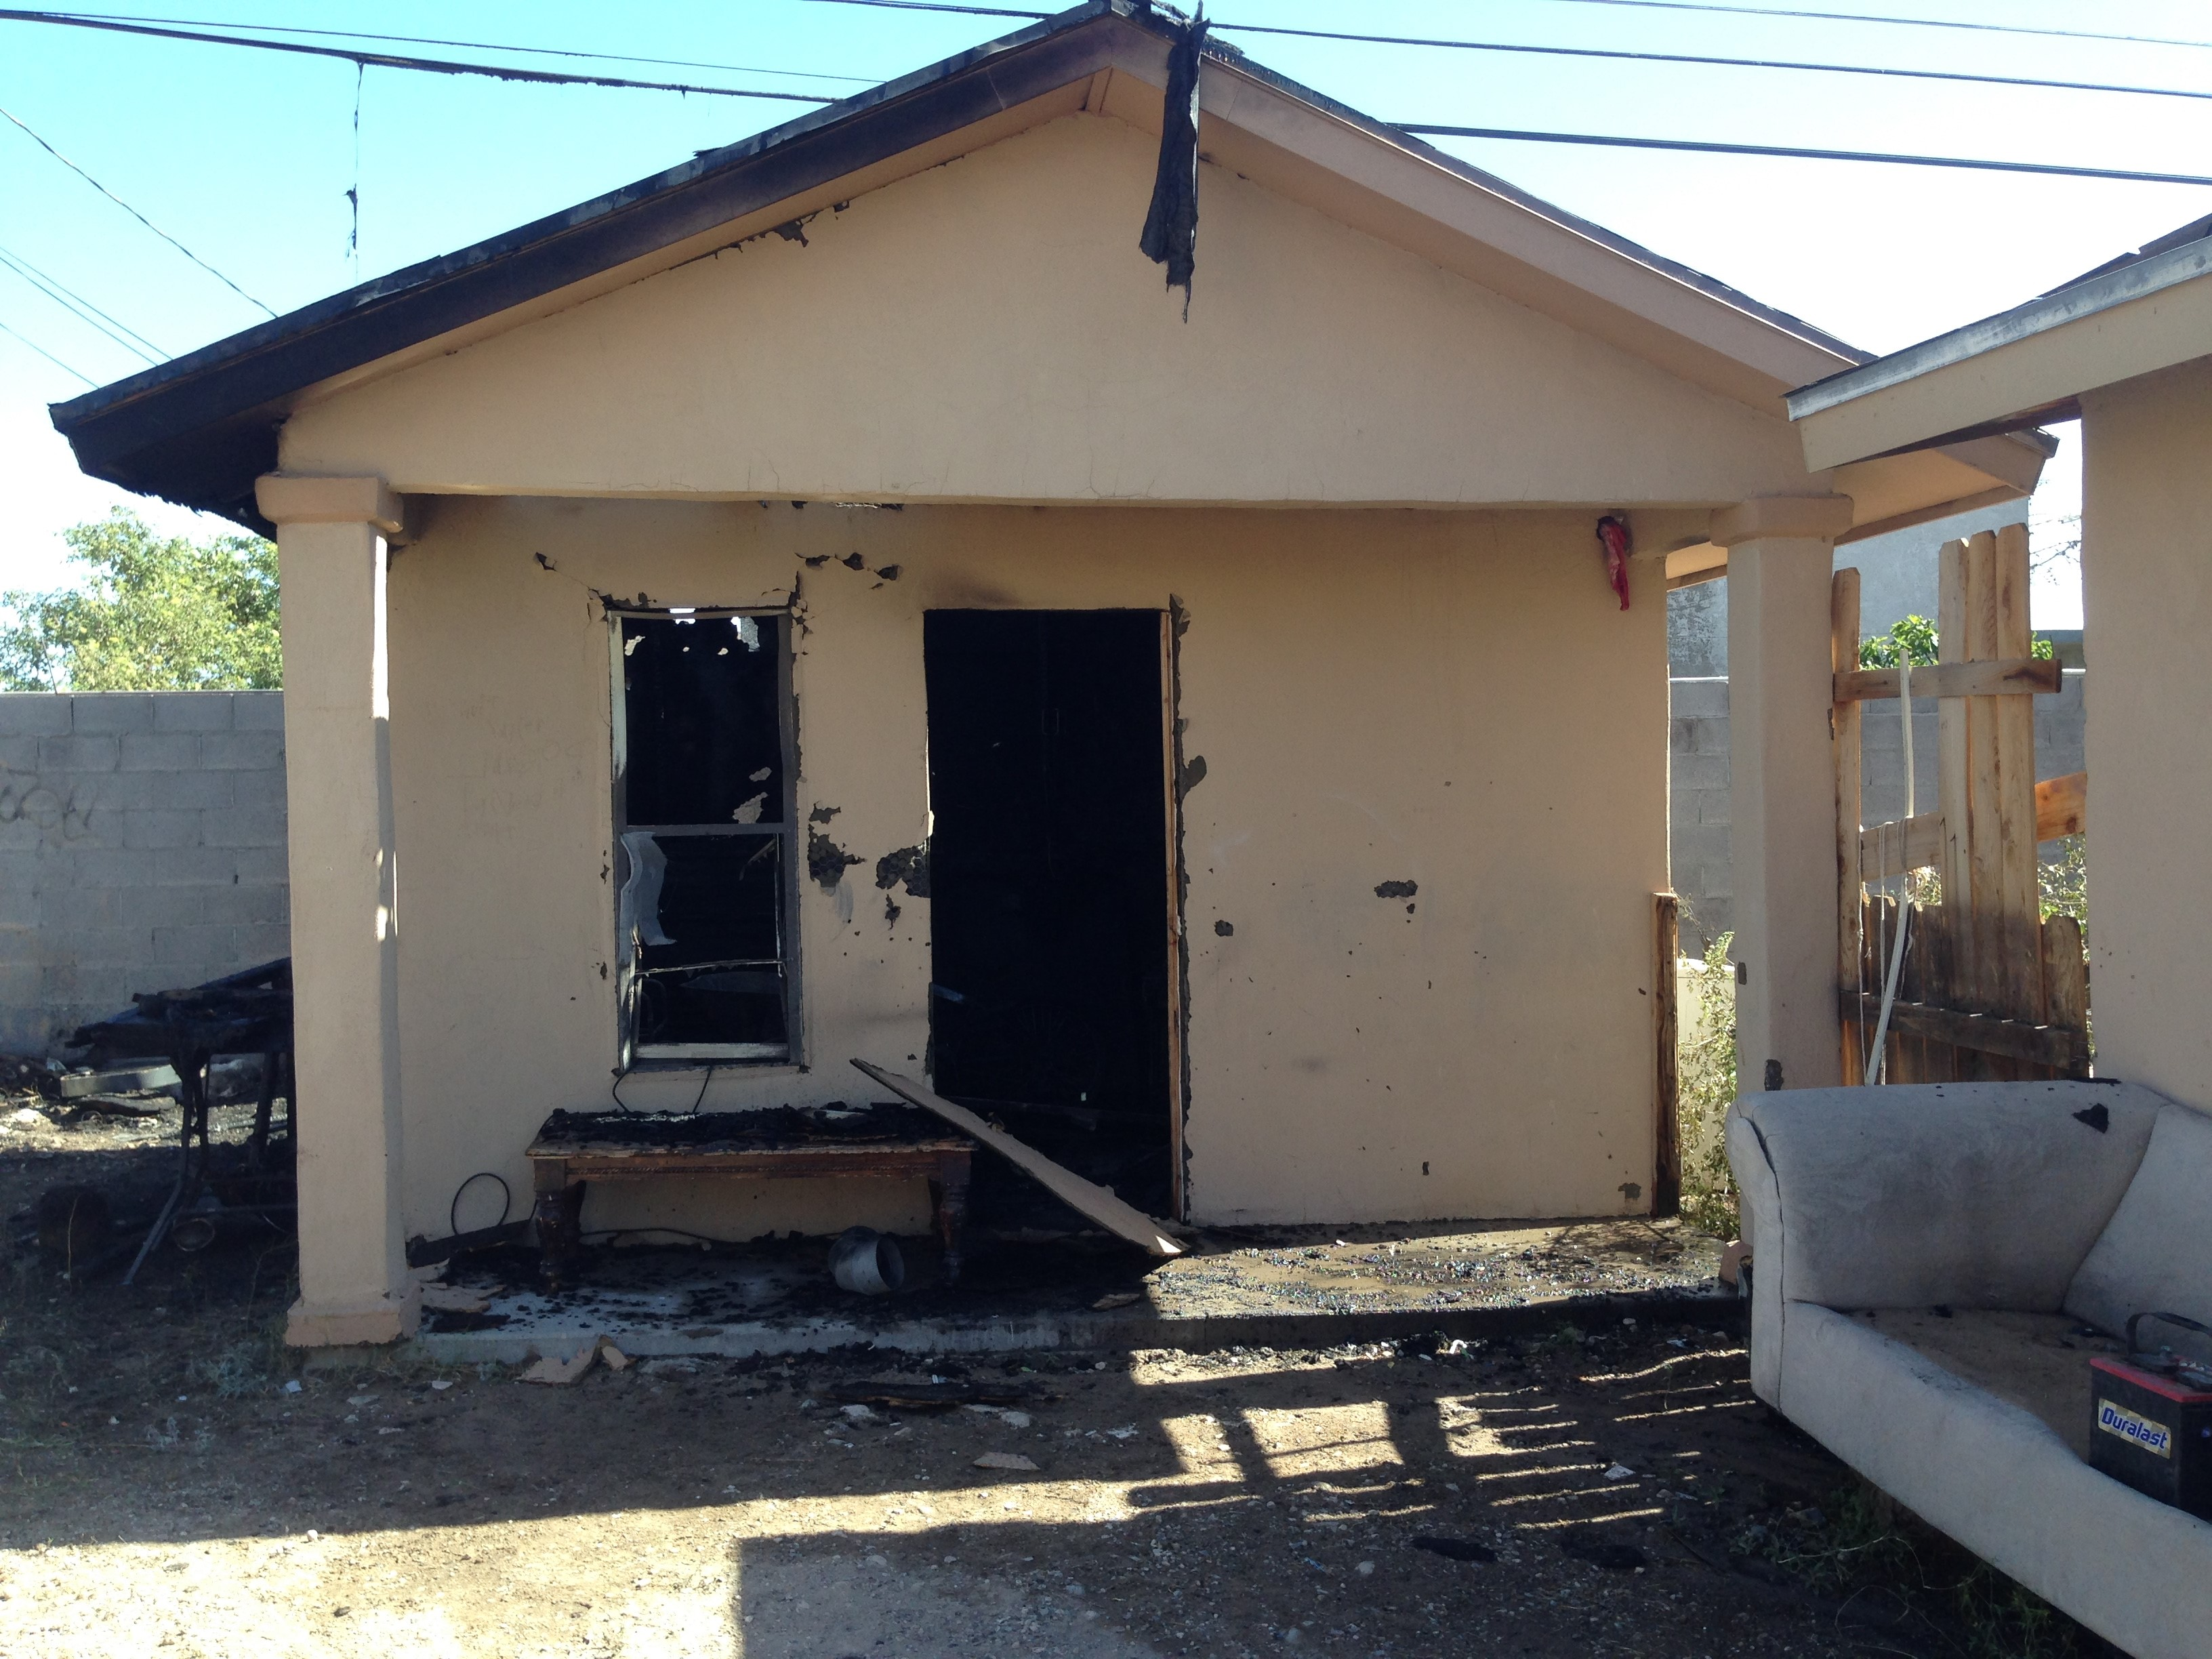 A fire was reported at a home in Westway Monday afternoon. (Credit: West Valley Fire Department)